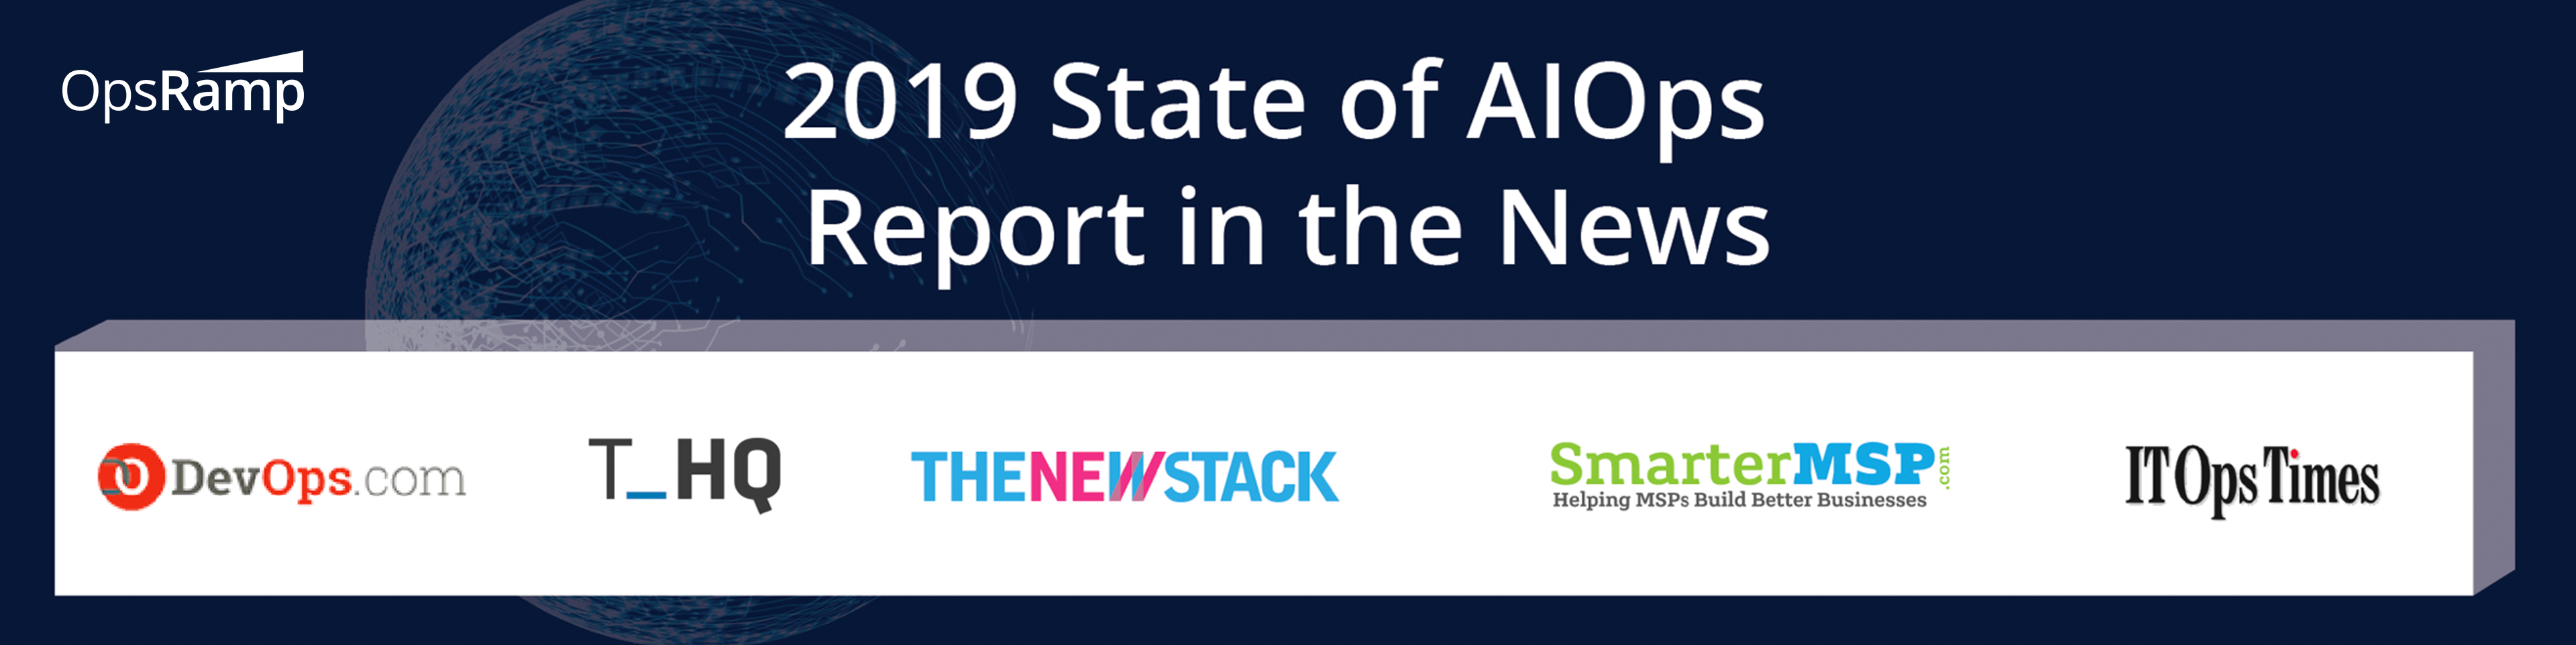 2019 State of AIOps Report